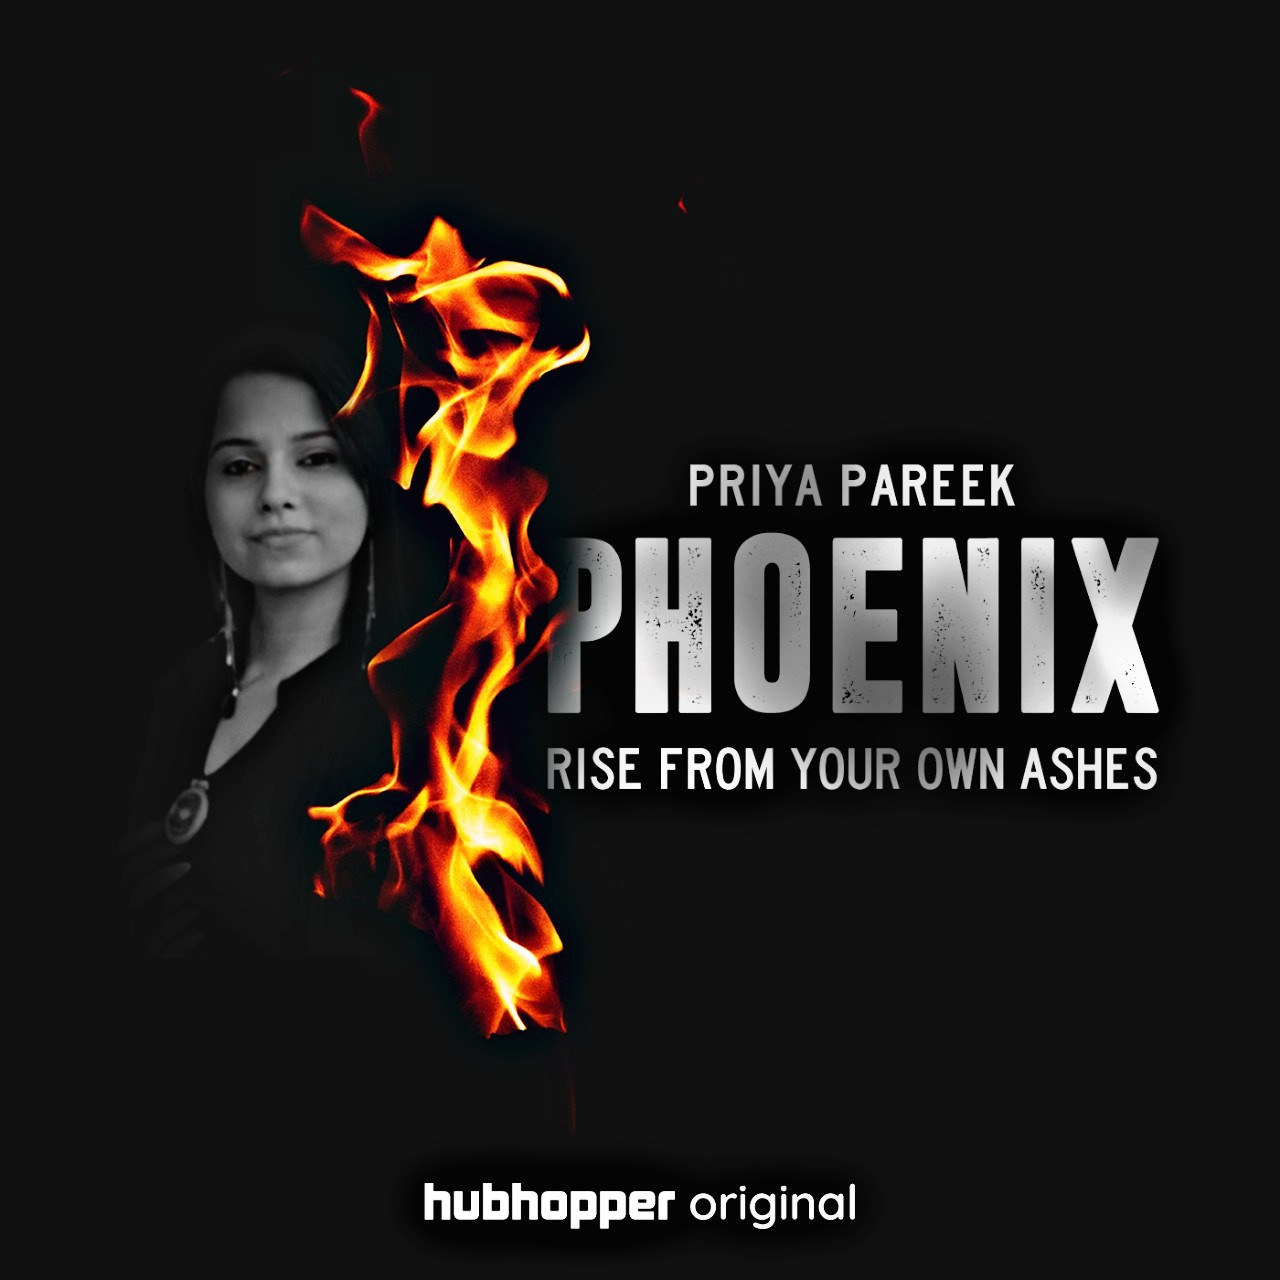 Phoenix: Rise From Your Own Ashes